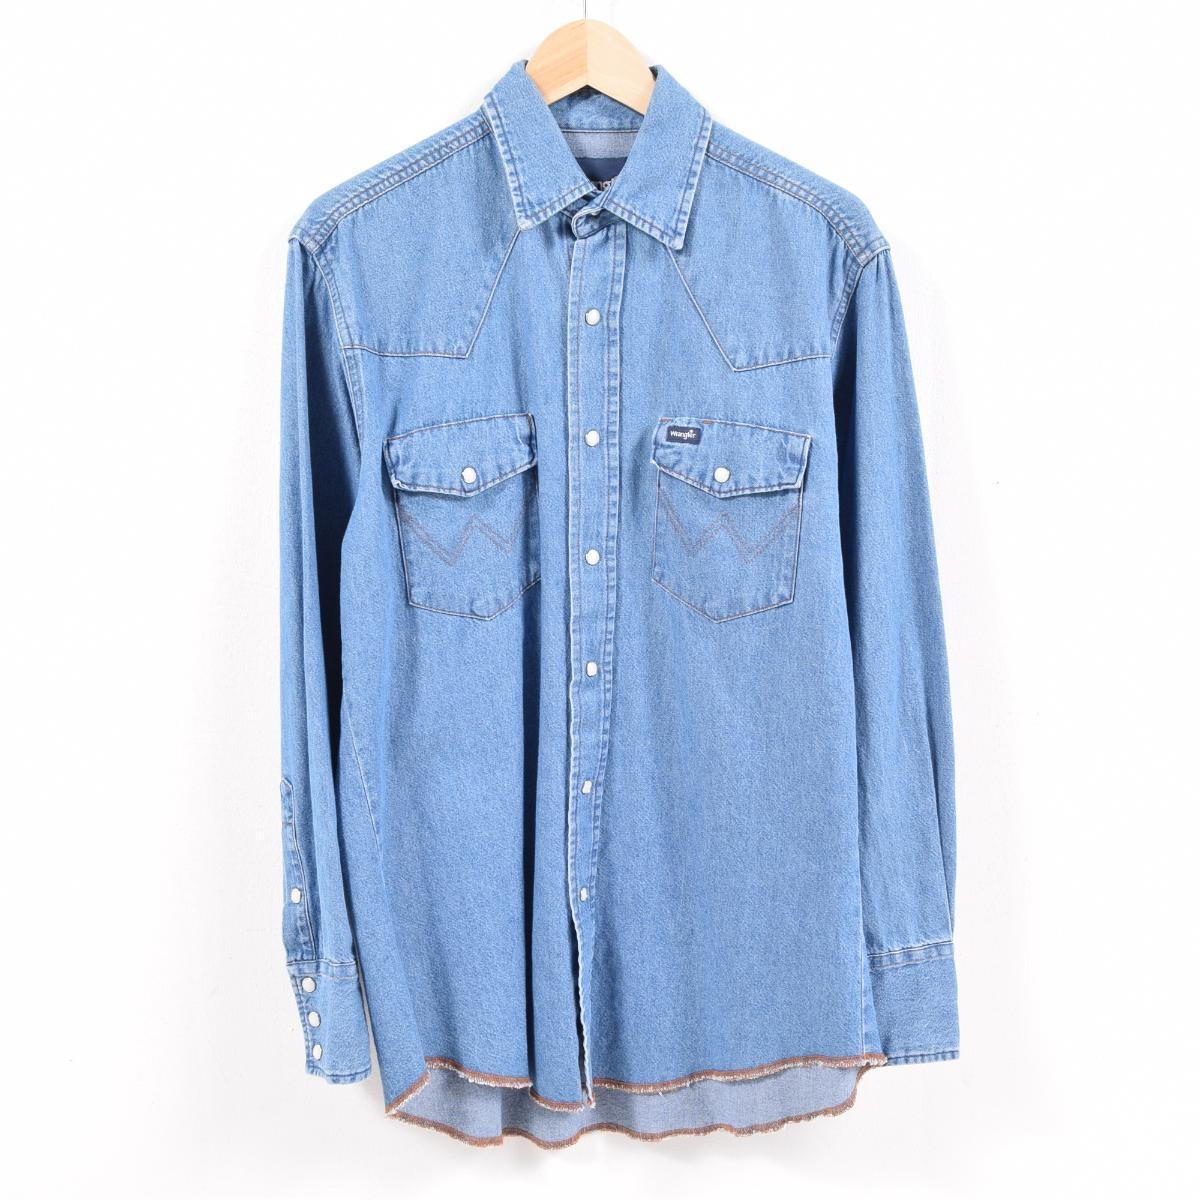 446bd76356 VINTAGE CLOTHING JAM  Wrangler Wrangler long sleeves denim western ...